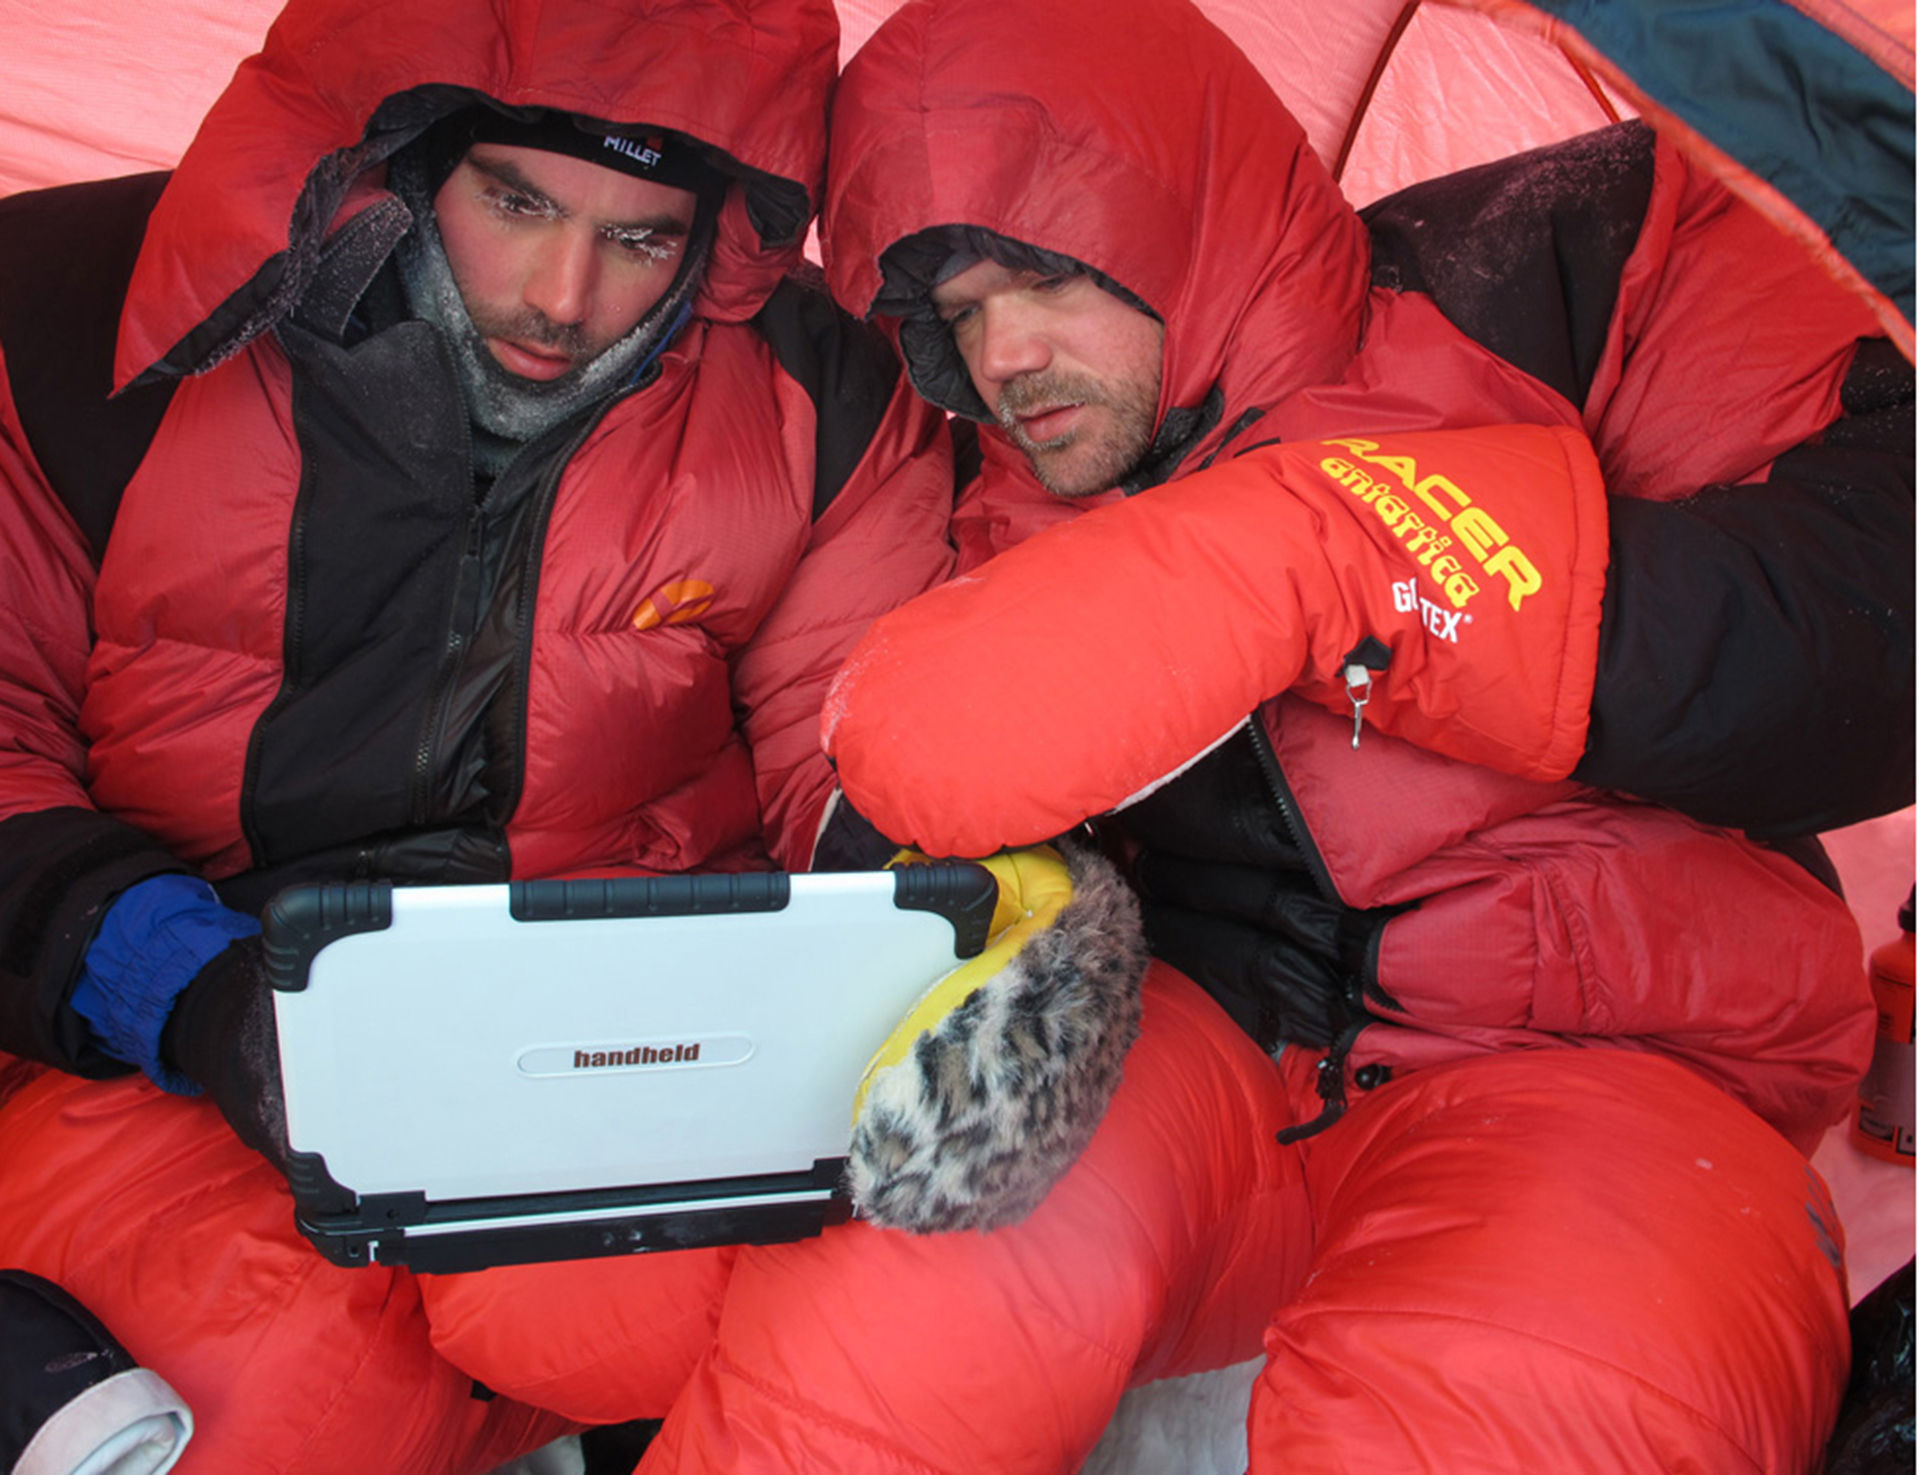 Algiz-XRW-working-in-cold-condition-at-north-pole.jpg